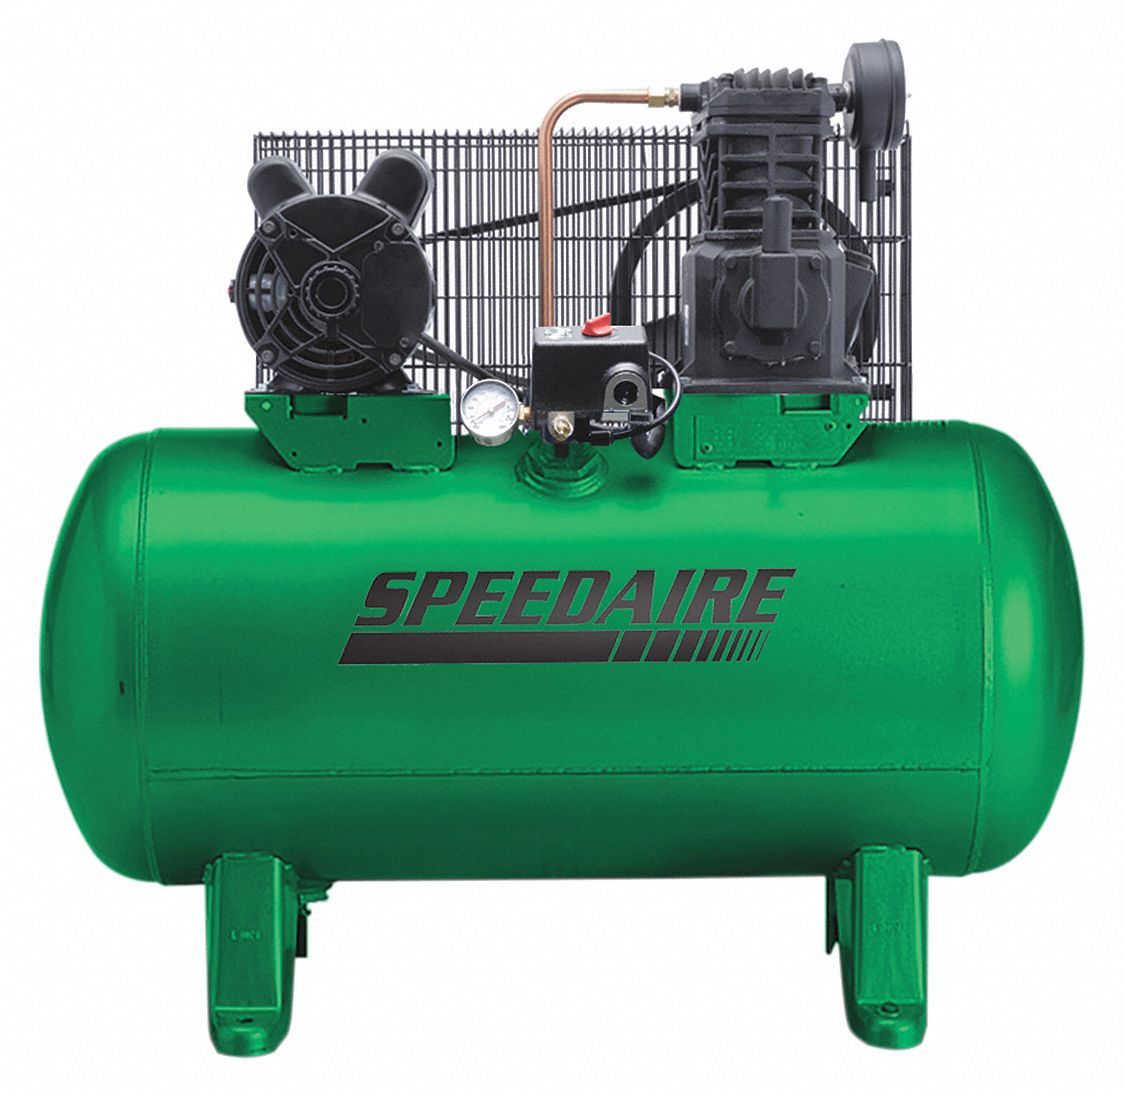 [SCHEMATICS_44OR]  SPEEDAIRE 3 Phase - Electrical Horizontal Tank Mounted 3.00HP - Air  Compressor Stationary Air Compressor, 30 g - 4B237 4B237 - Grainger   Industrial Compressors 3 Phase Wiring Diagram      Grainger